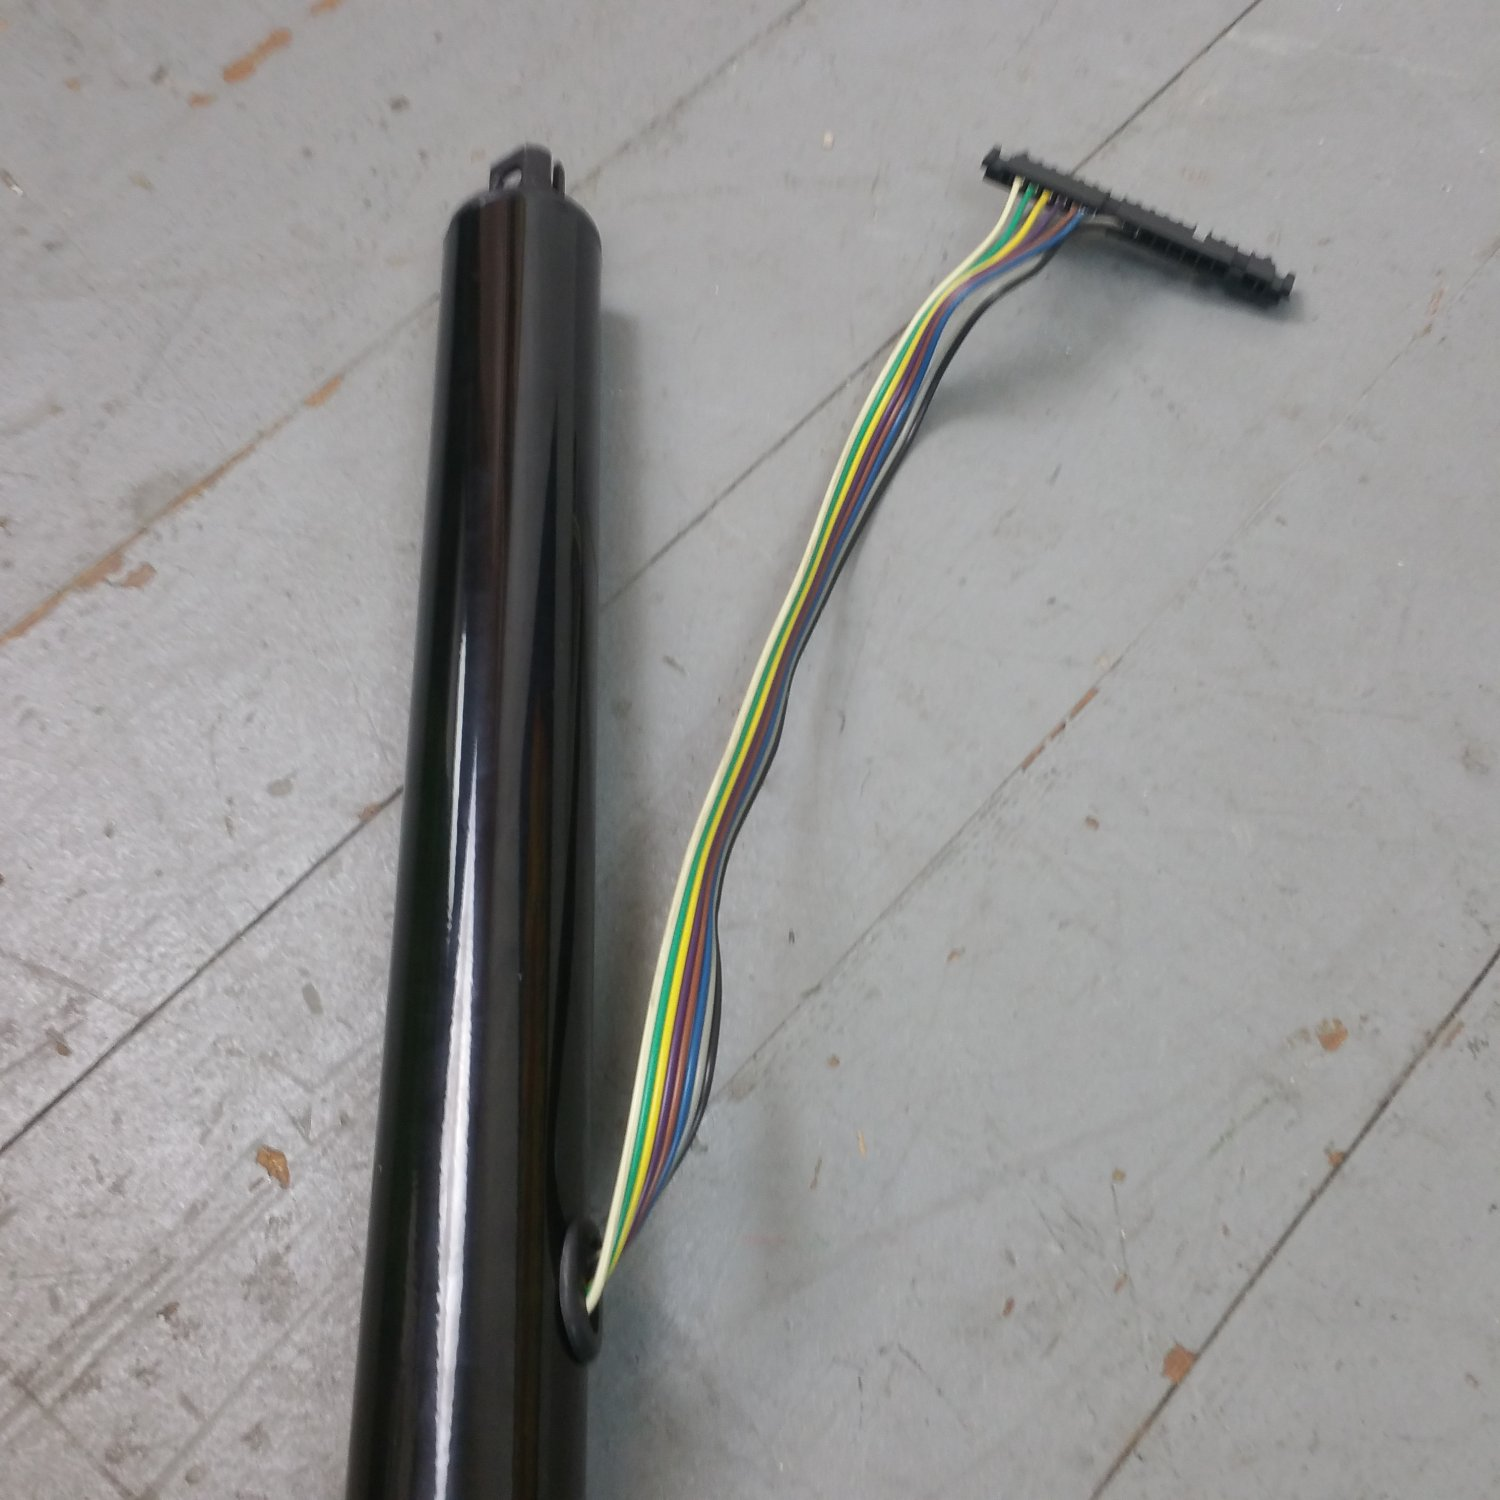 hight resolution of other parts may be needed such as u joints steering shafts additional wiring